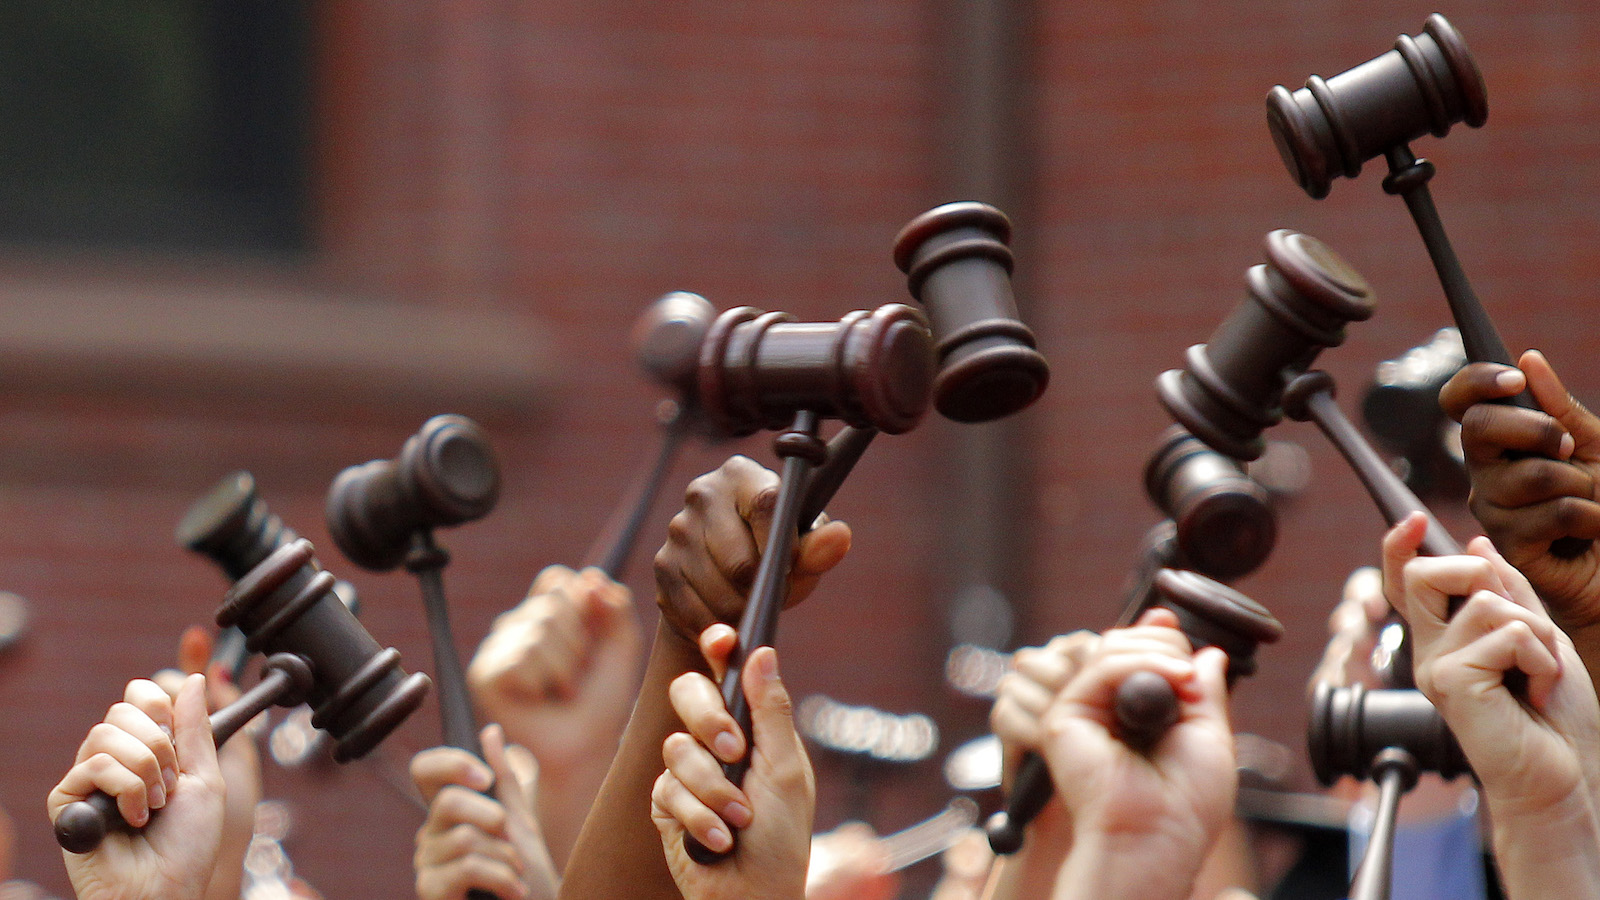 Graduates from the law school hold up gavels in celebration during their commencement at Harvard University in Cambridge, Massachusetts May 27, 2010.     REUTERS/Adam Hunger (UNITED STATES - Tags: EDUCATION IMAGES OF THE DAY) - RTR2EFVD